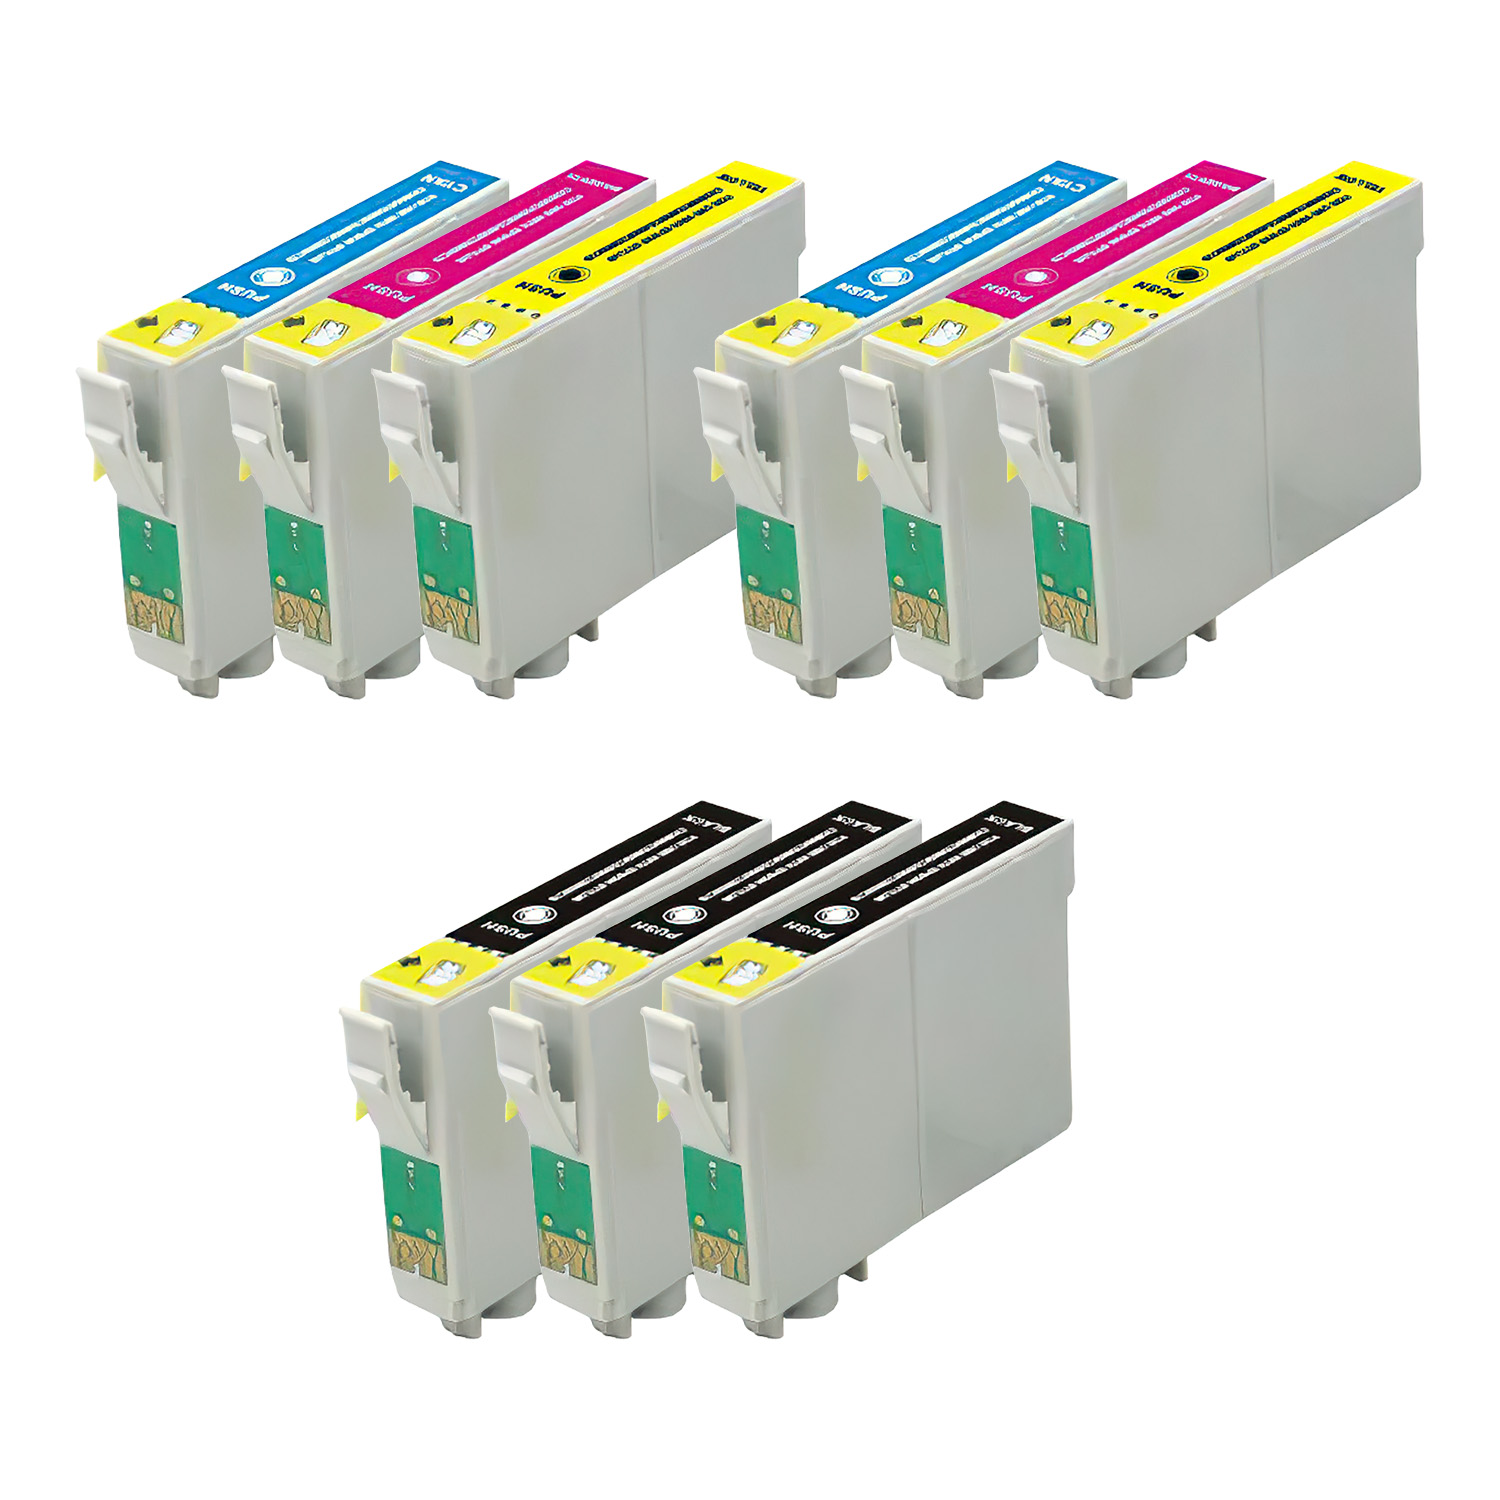 Remanufactured Epson 73 Inkjet Pack - 9 Cartridges